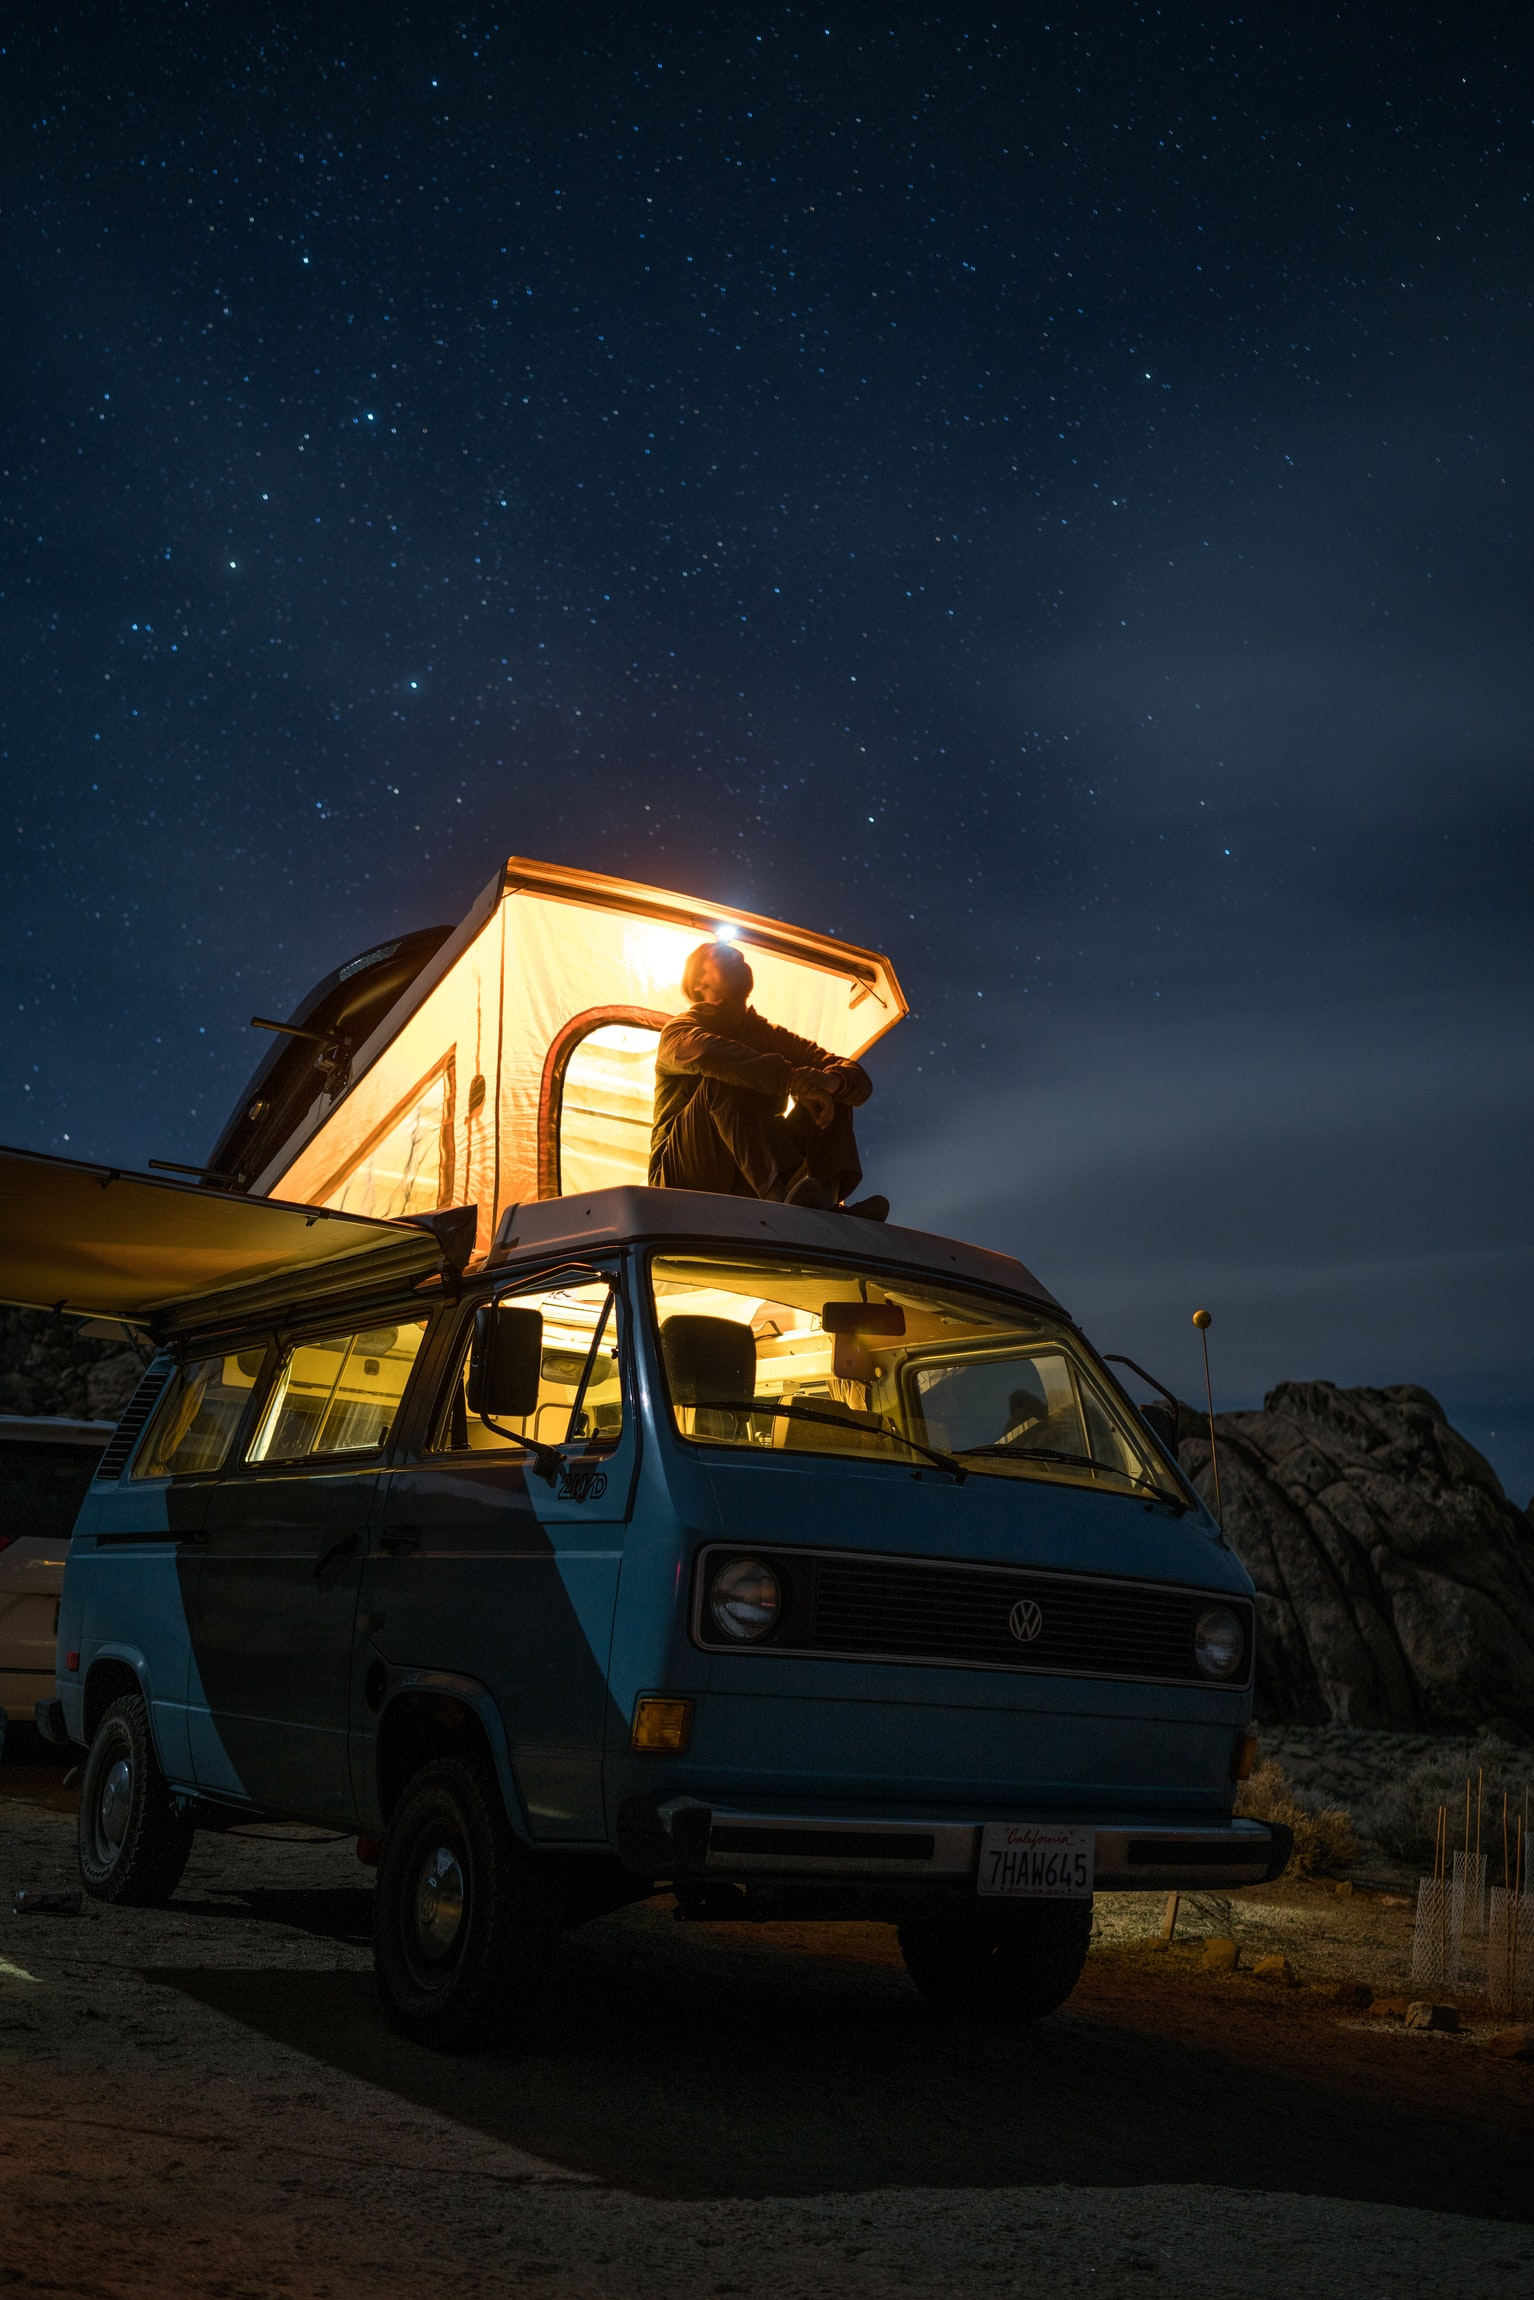 watching the sky at night fom an RV